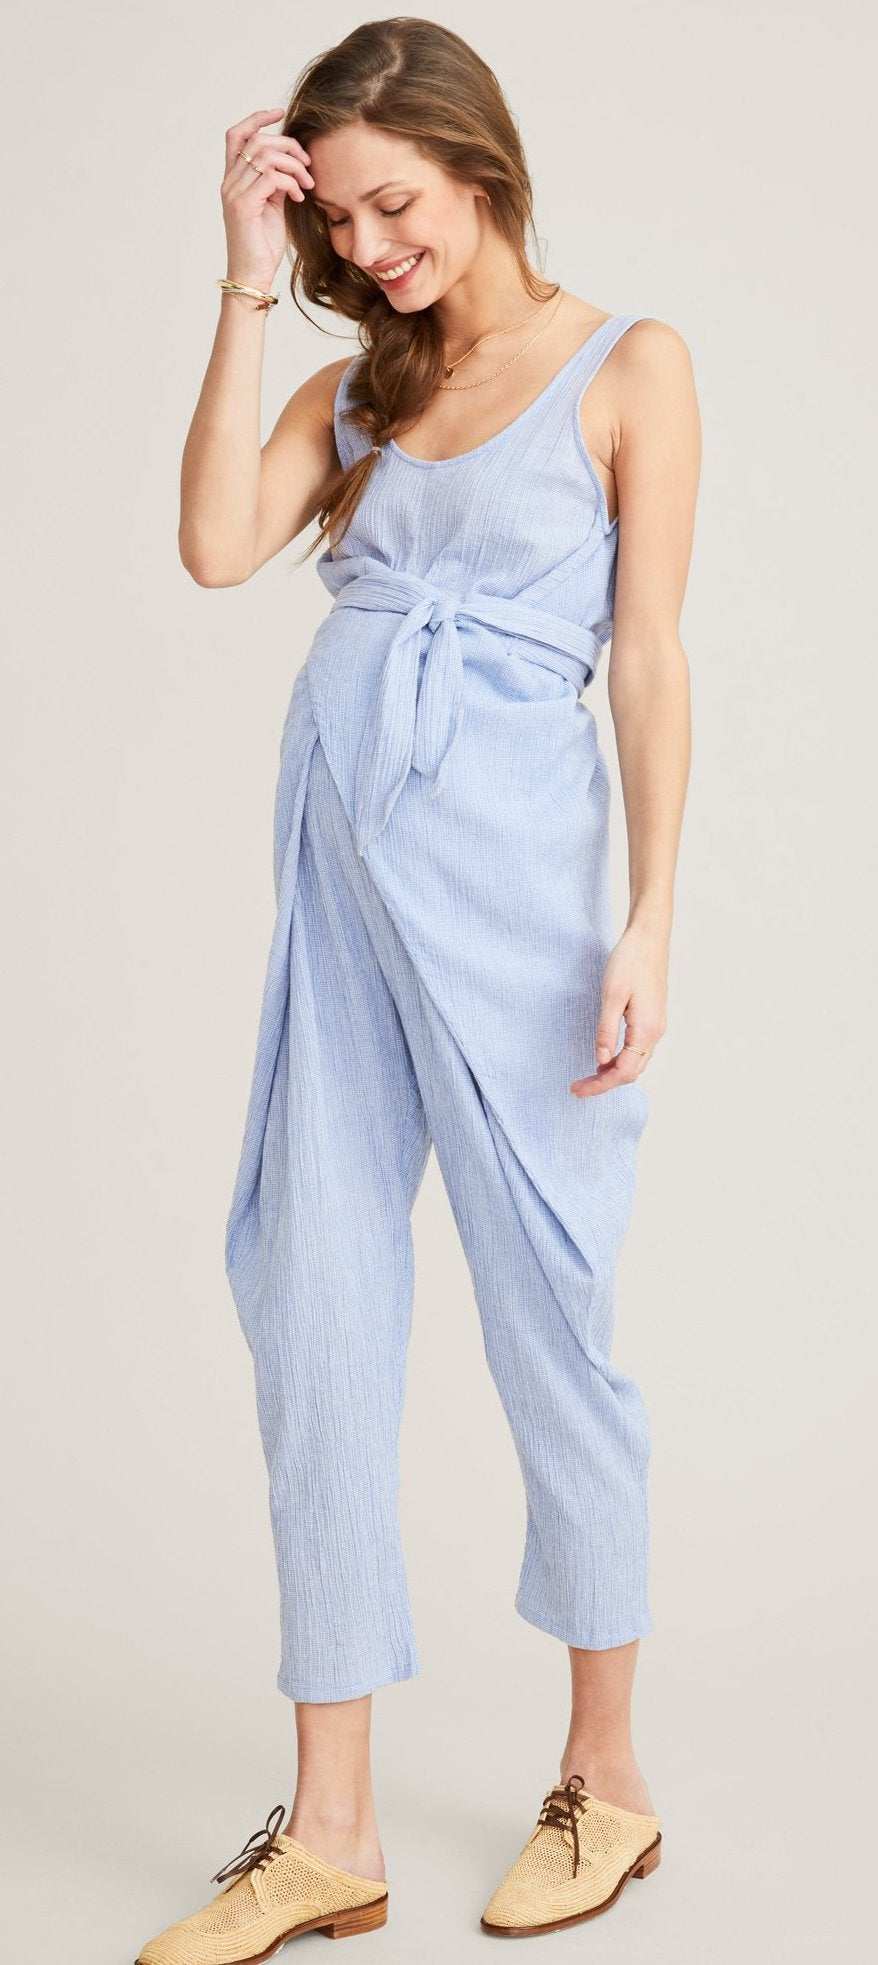 The Wrap Around Jumpsuit